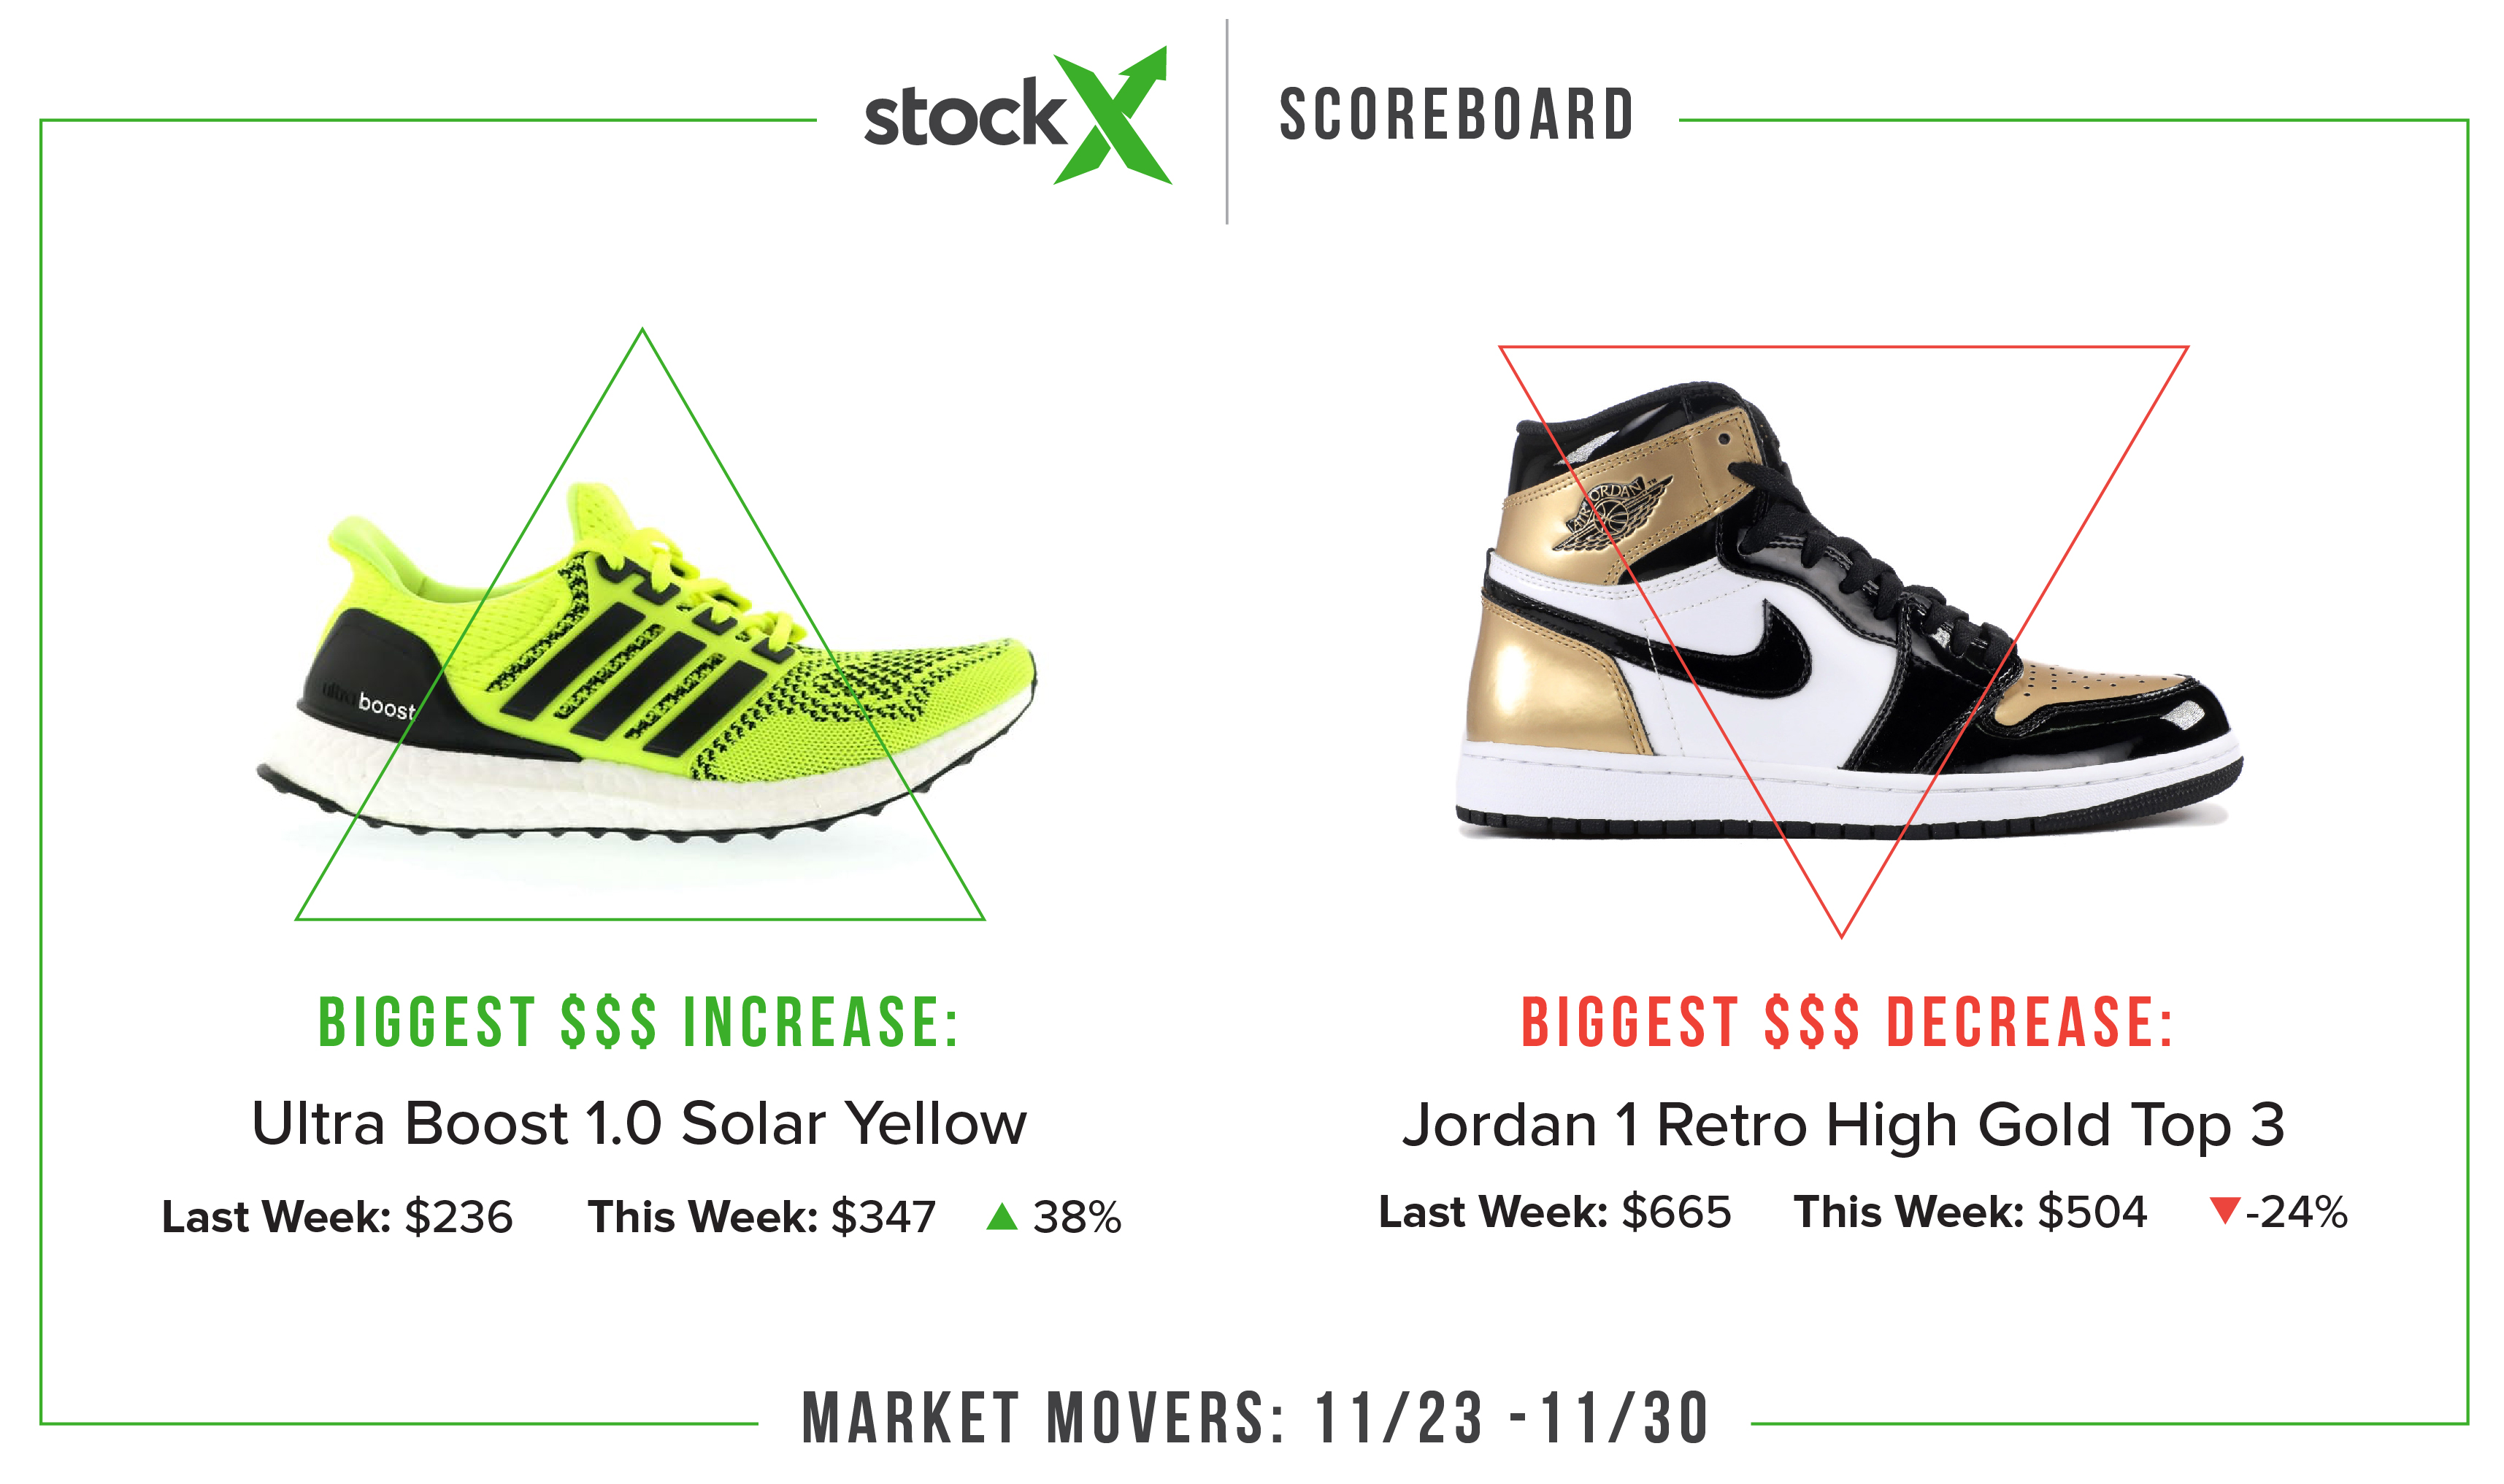 timeless design 61d45 3e43e Stockx Scoreboard - Beluga 2.0 Dominance - StockX News